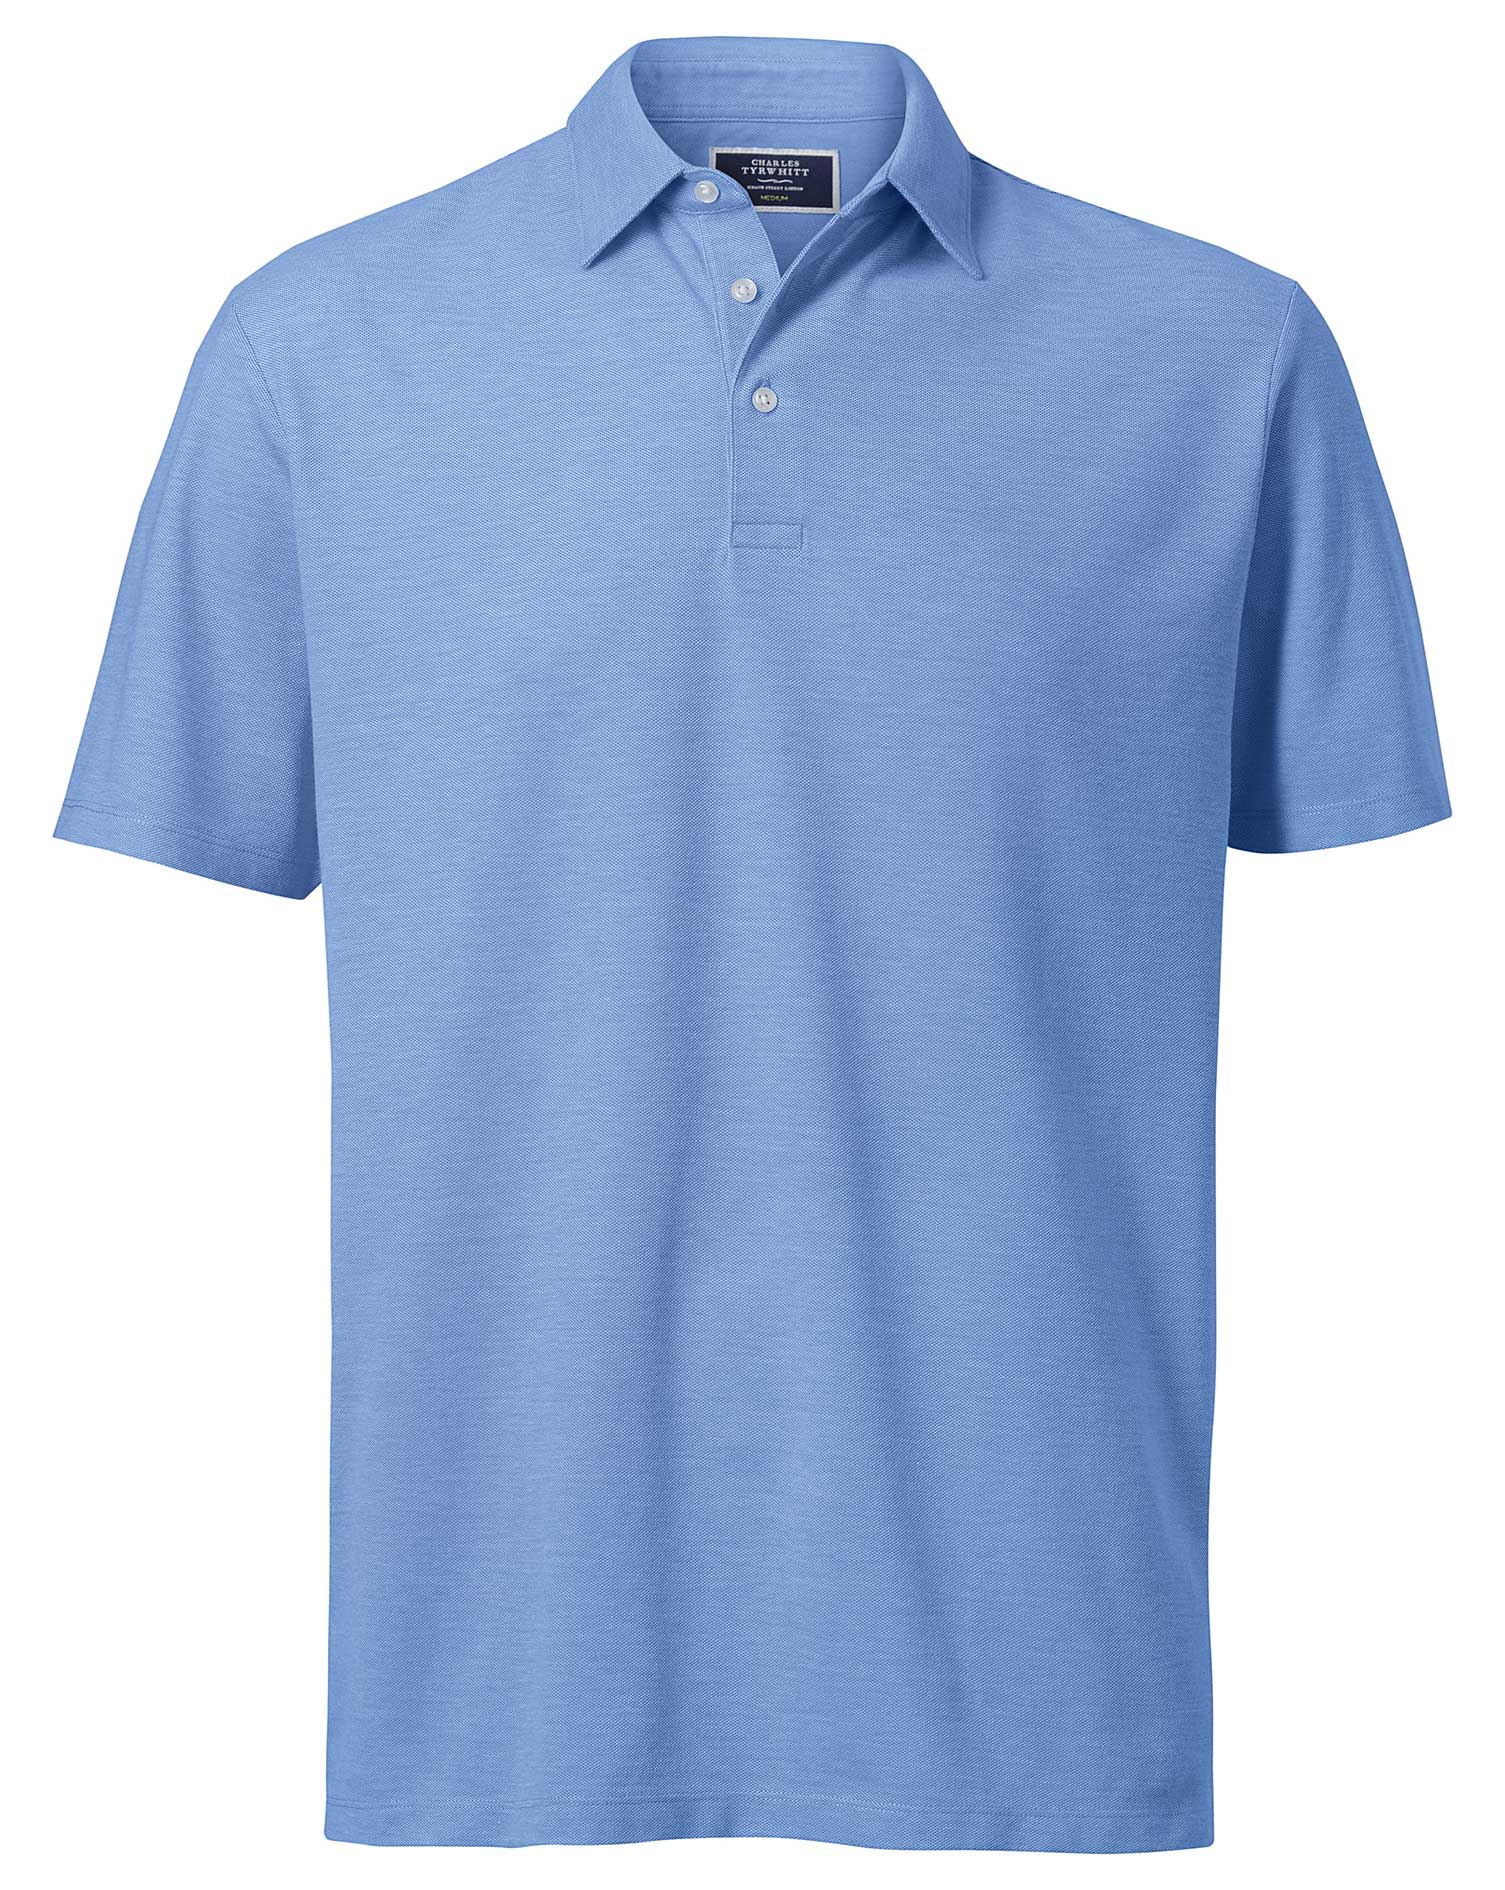 Sky Blue Oxford Cotton Polo Size Small by Charles Tyrwhitt